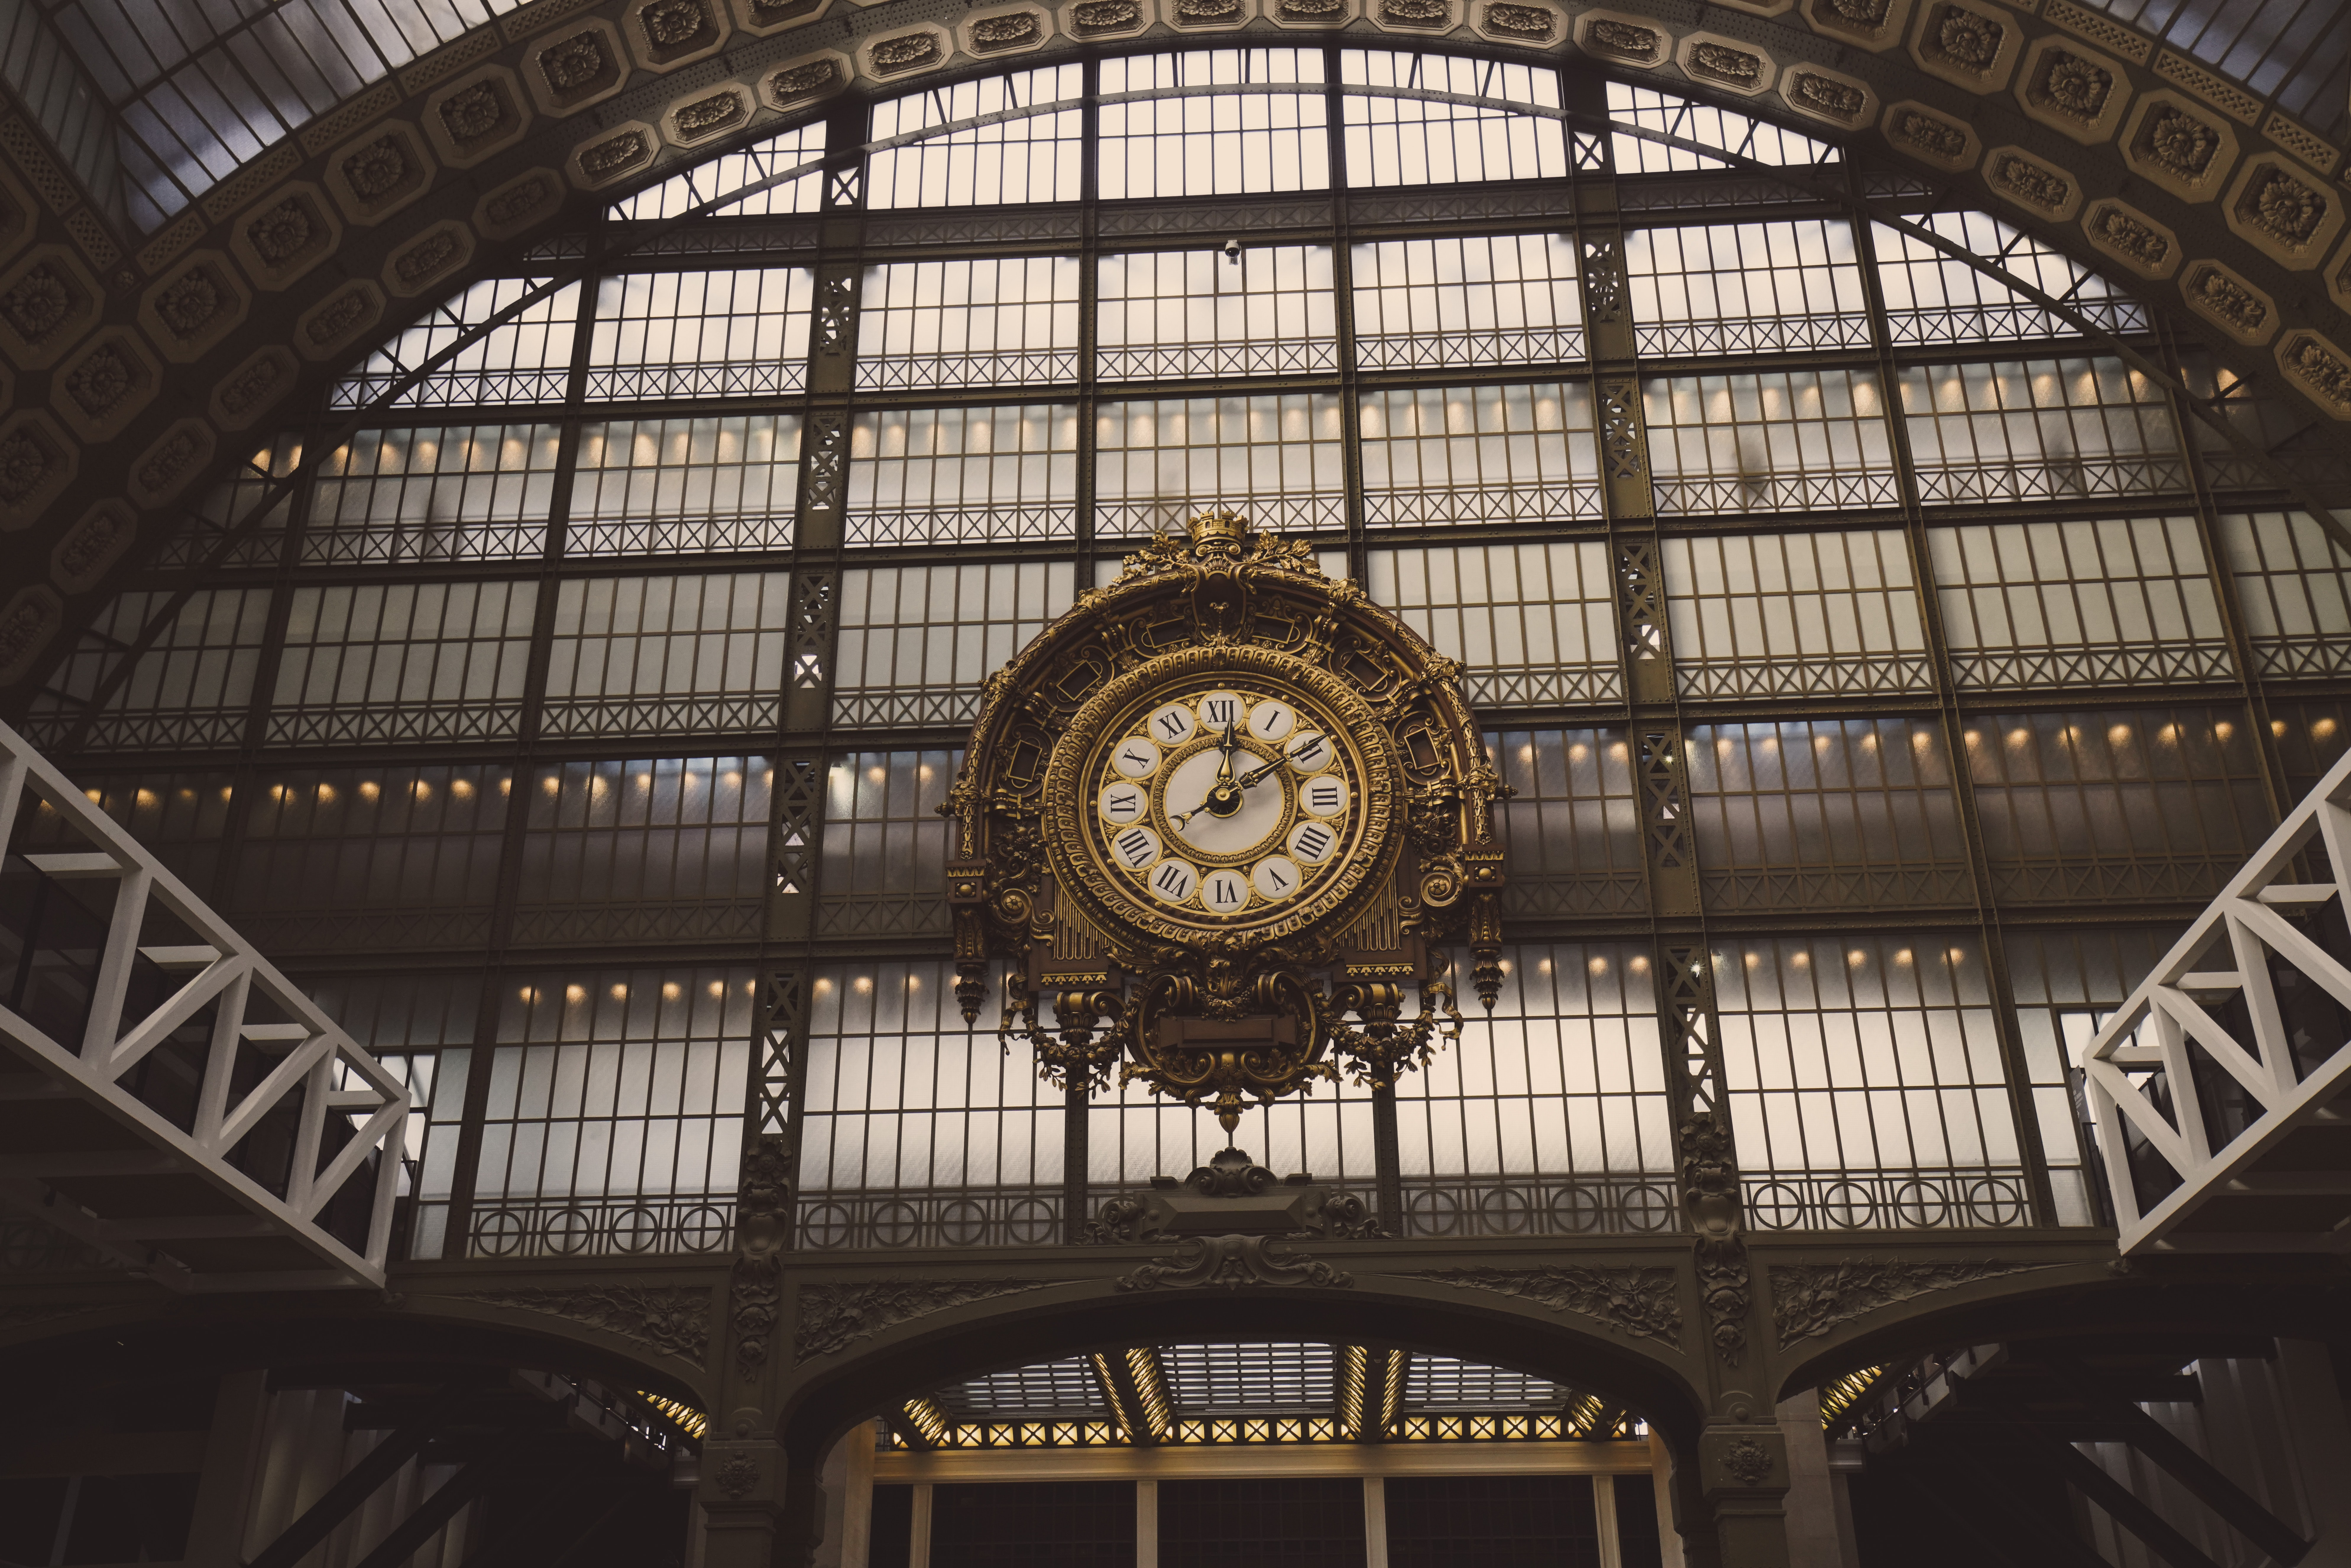 The famous grand clock in the Musee de Orsay that oversees the entire museum.